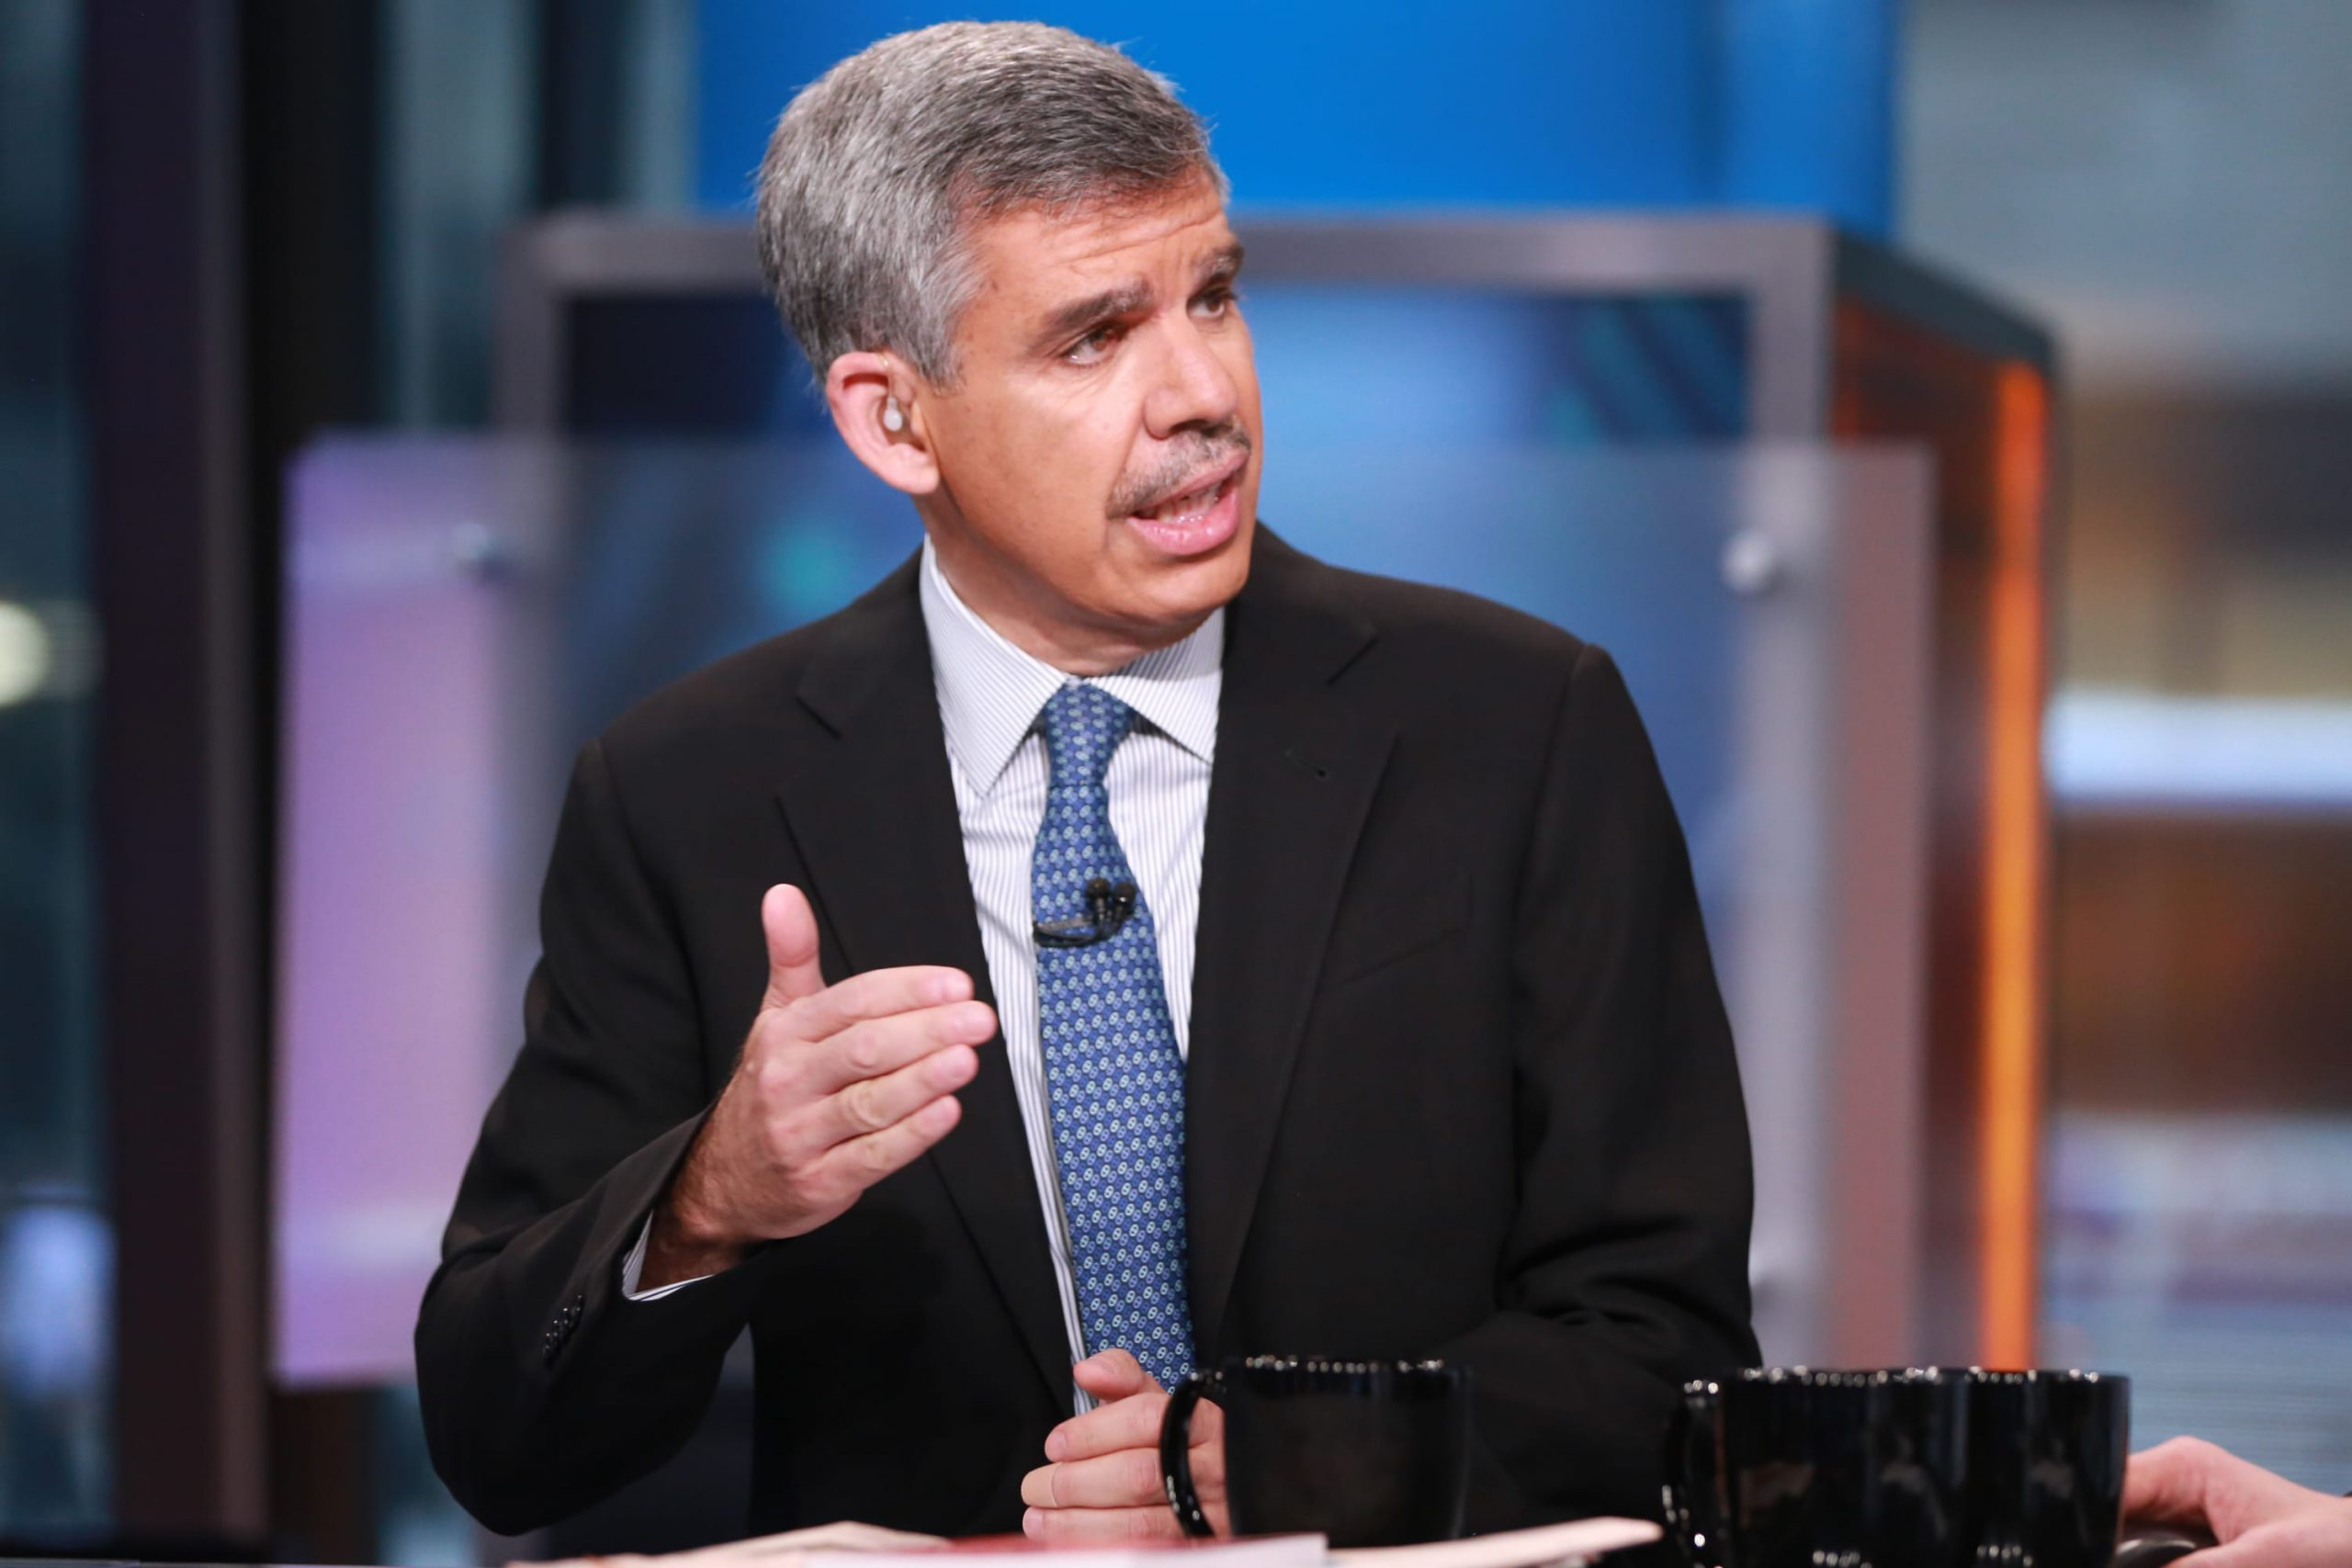 El-Erian: We're not in an 'all clear' for stock index buying, but the sell 'everything' moment has passed